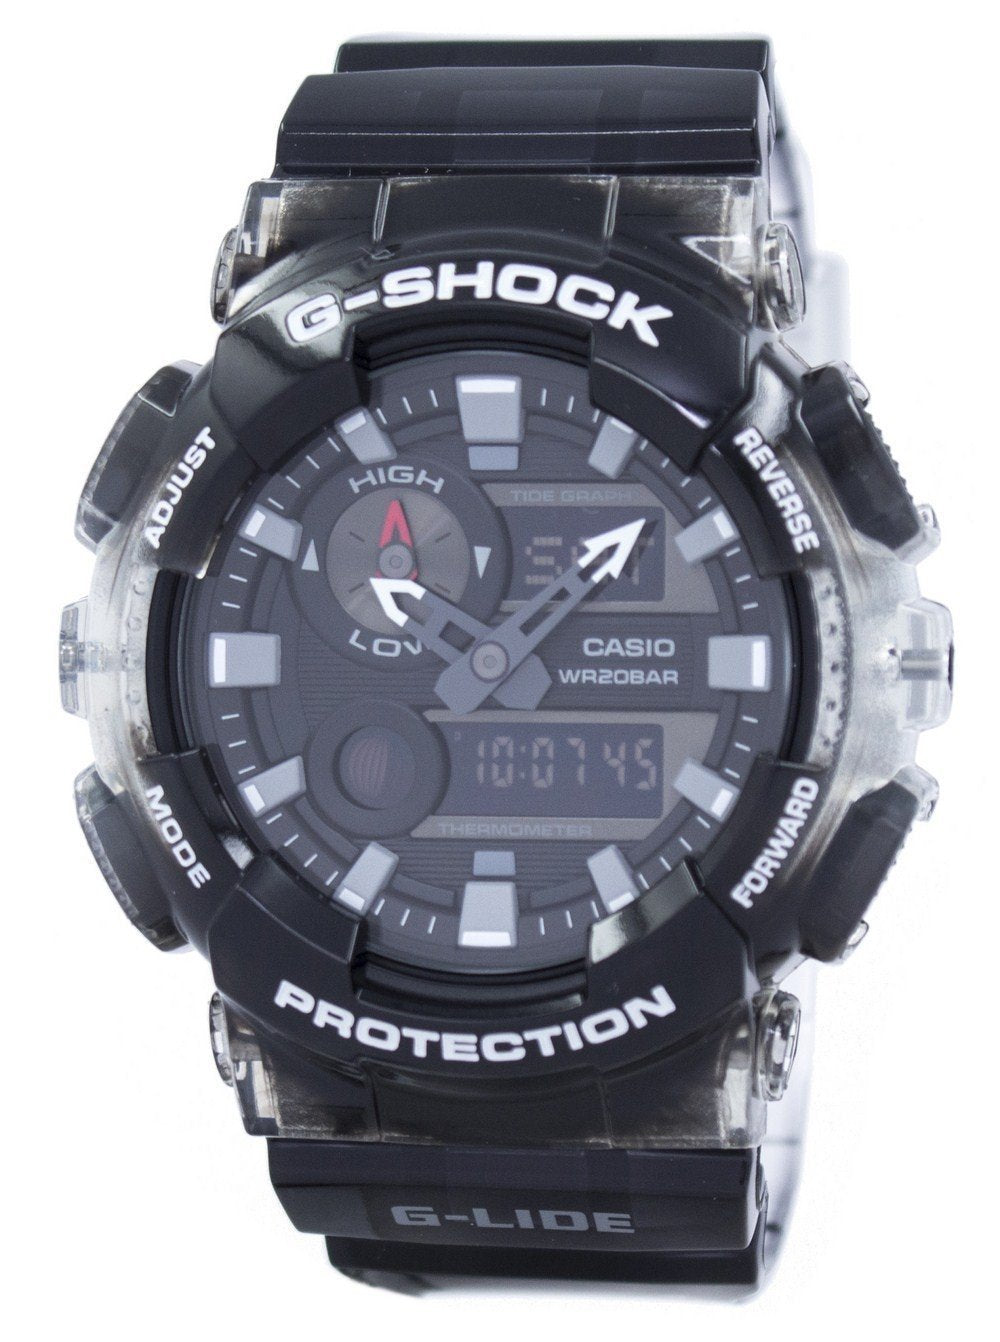 Casio G-Shock G-LIDE Tide Graph Thermometer Moon Phase GAX-100MSB-1A GAX100MSB-1A Men's Watch